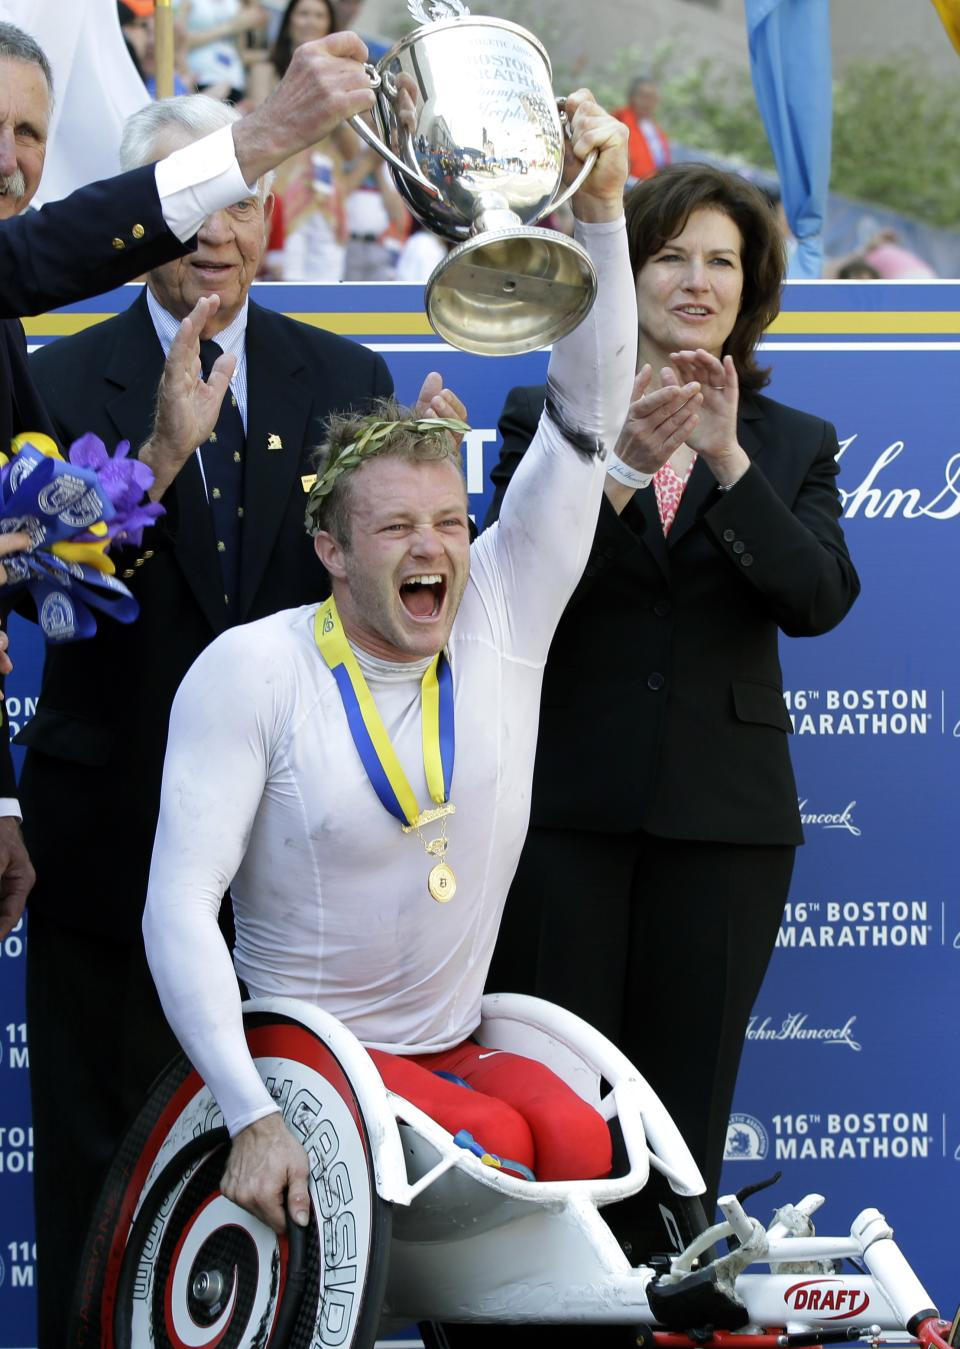 Men's wheelchair winner Joshua Cassidy of Canada reacts with his trophy at the finish area of the 2012 Boston Marathon in Boston, Monday, April 16, 2012. (AP Photo/Elise Amendola)